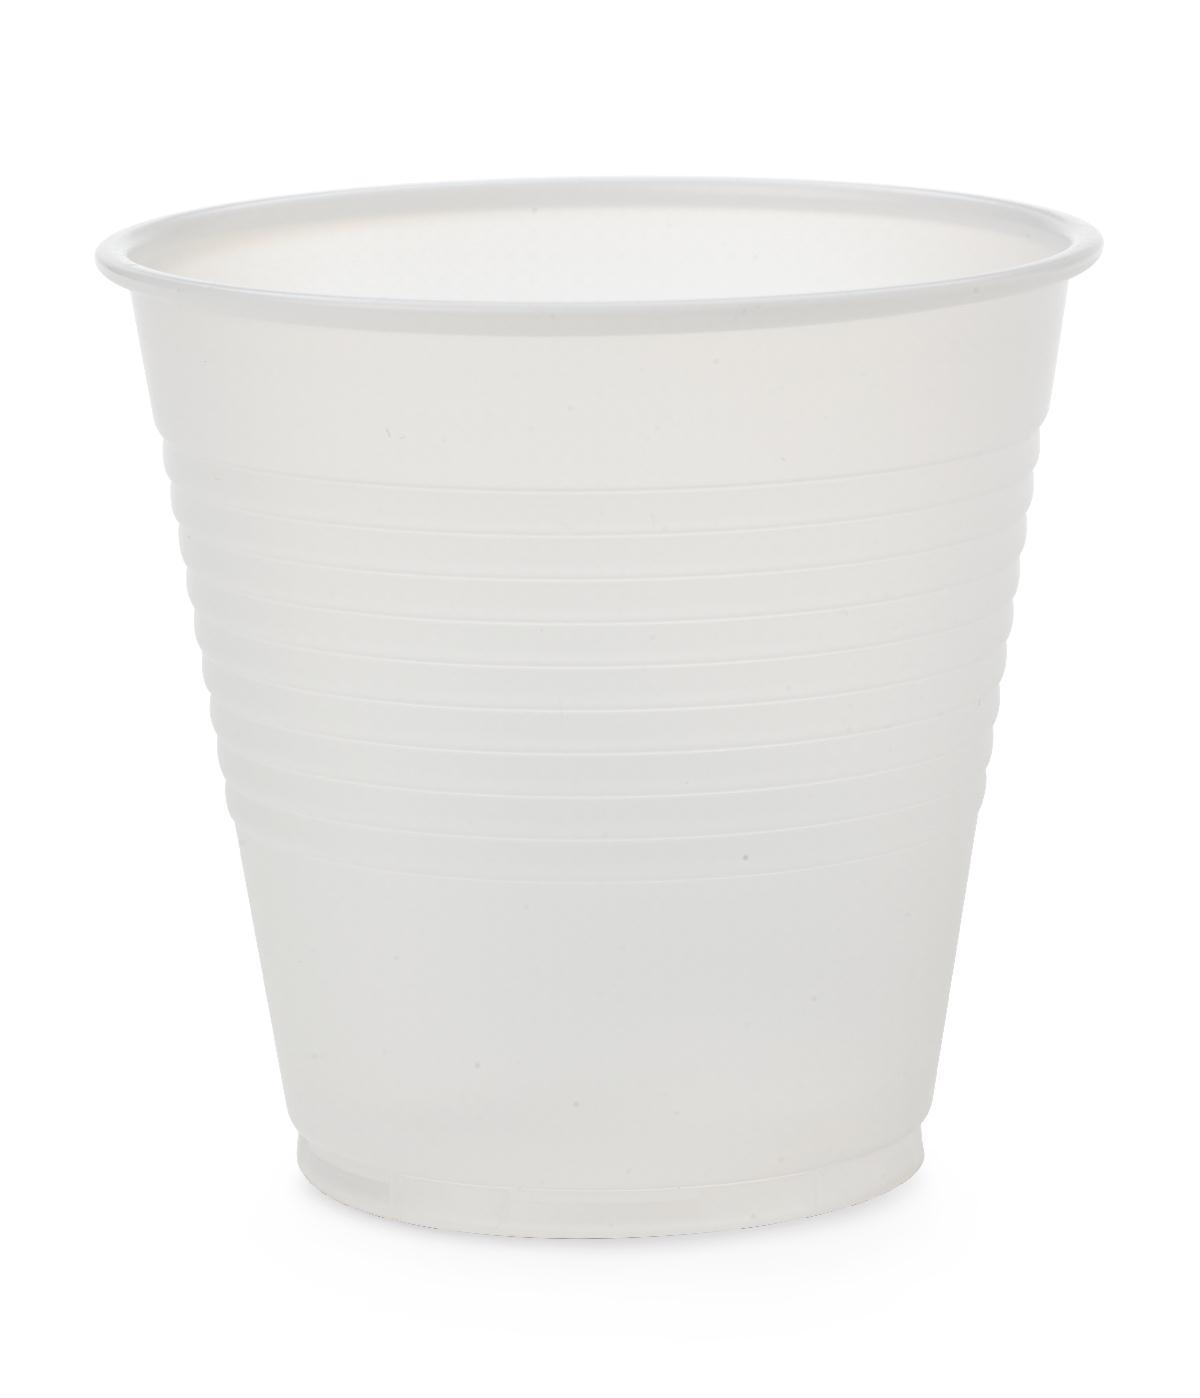 Translucent Plastic Cups Plastic NON03005 Medline